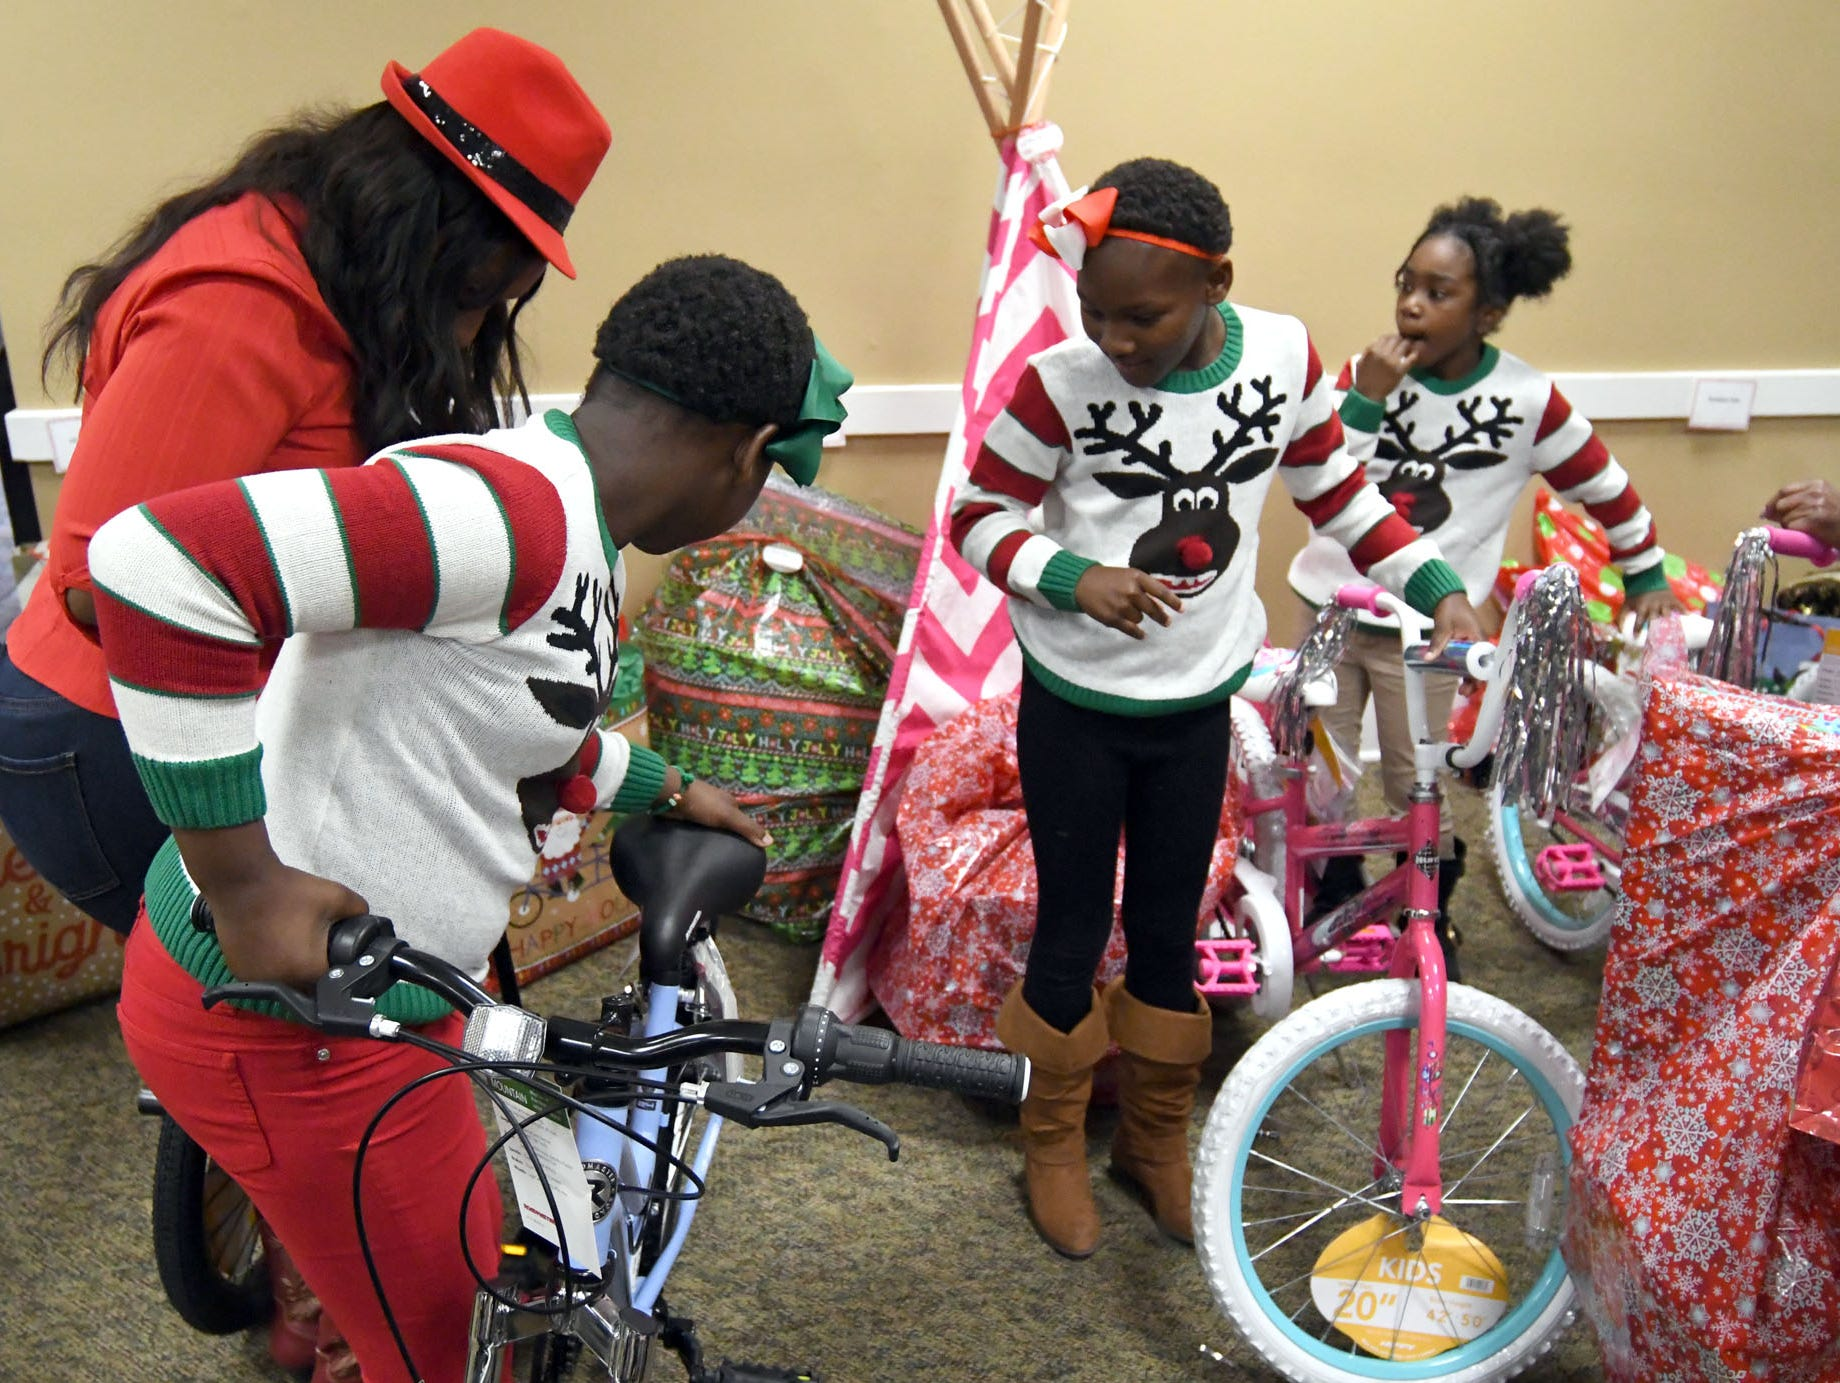 Children look at their new presents during the Hattiesburg Police Department's Victim Service Unit's Hearts of Hope Christmas party for victims affected by violent crimes at Jackie Sherrill Community Center on Thursday, December 20, 2018. Toys were donated through the Ryan's Chevrolet Stuff-a-Truck event and by the HPD Benevolent Fund.